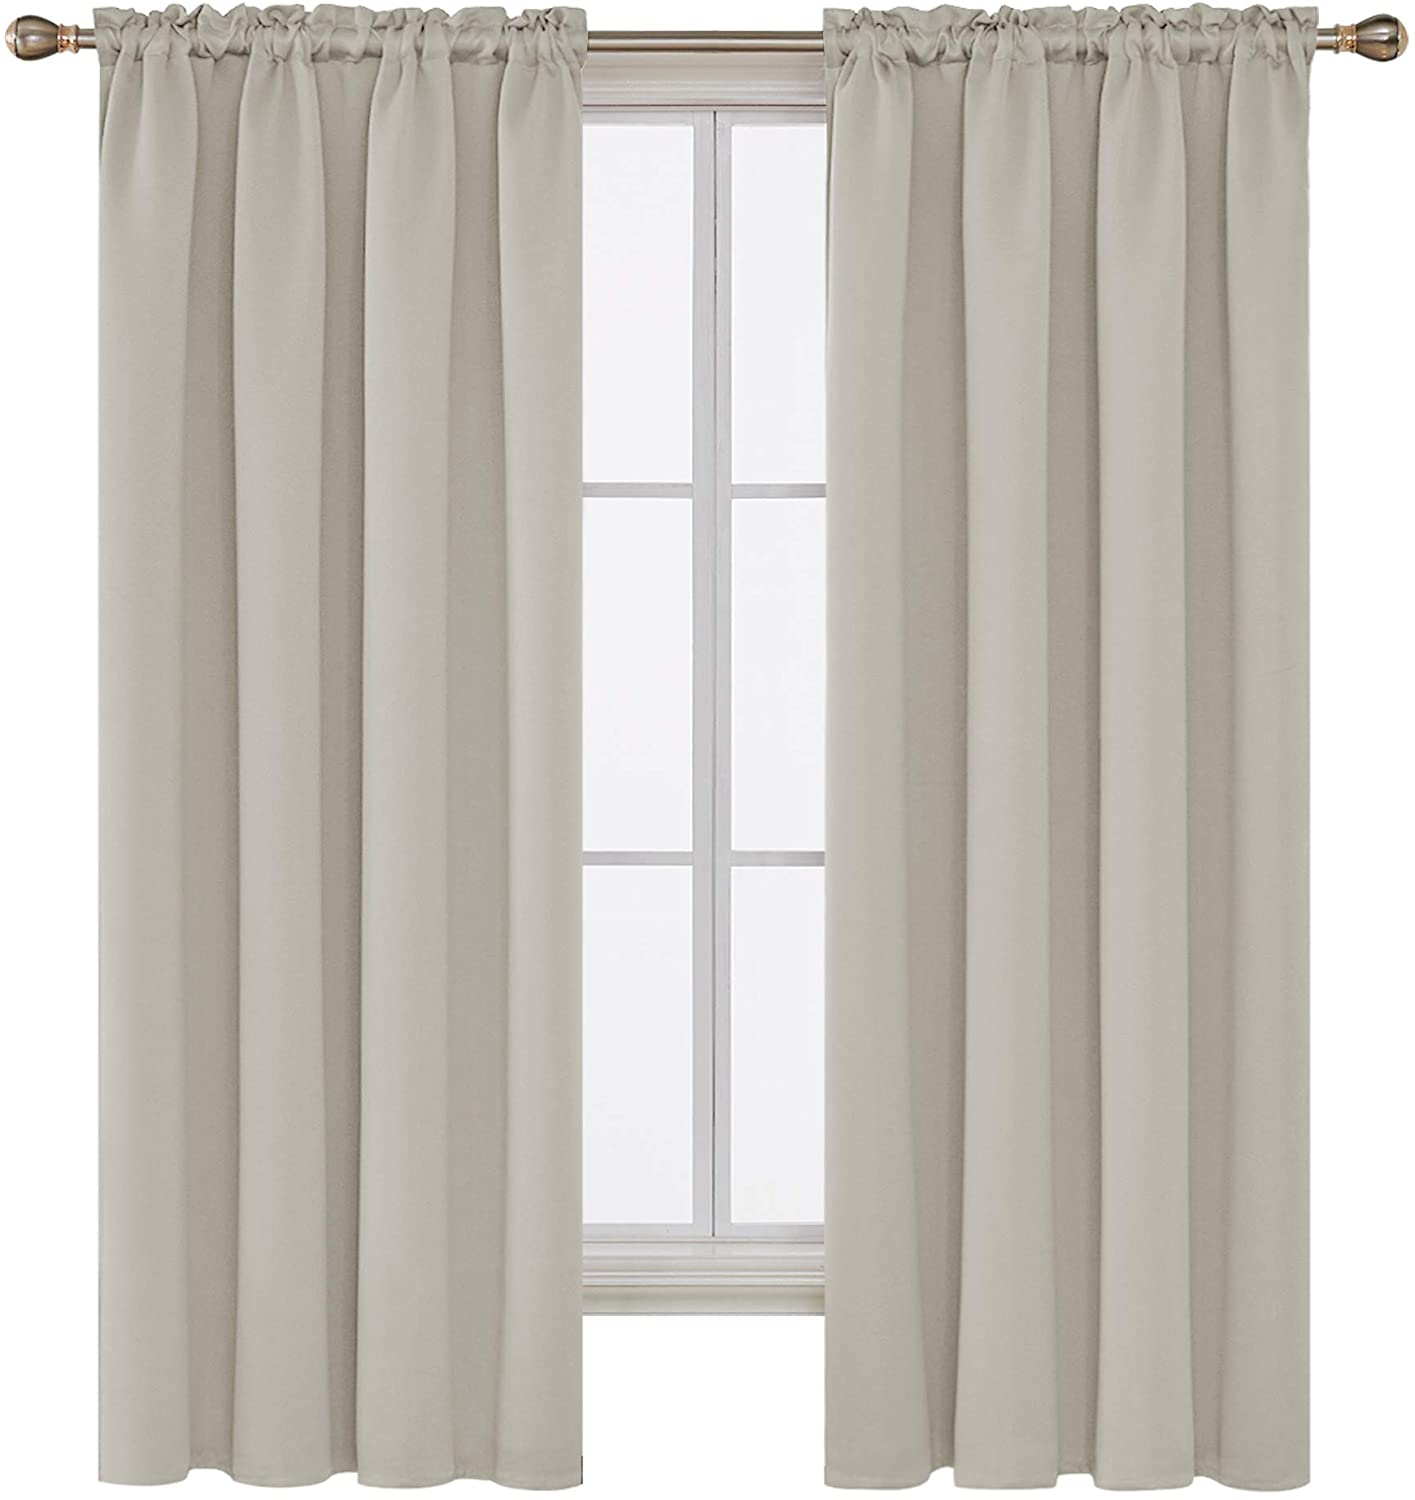 Deconovo Blackout Curtains Room Darkening Drapes and Window Curtains for Nursery 42W x 72L Inch Light Beige 2 Panels